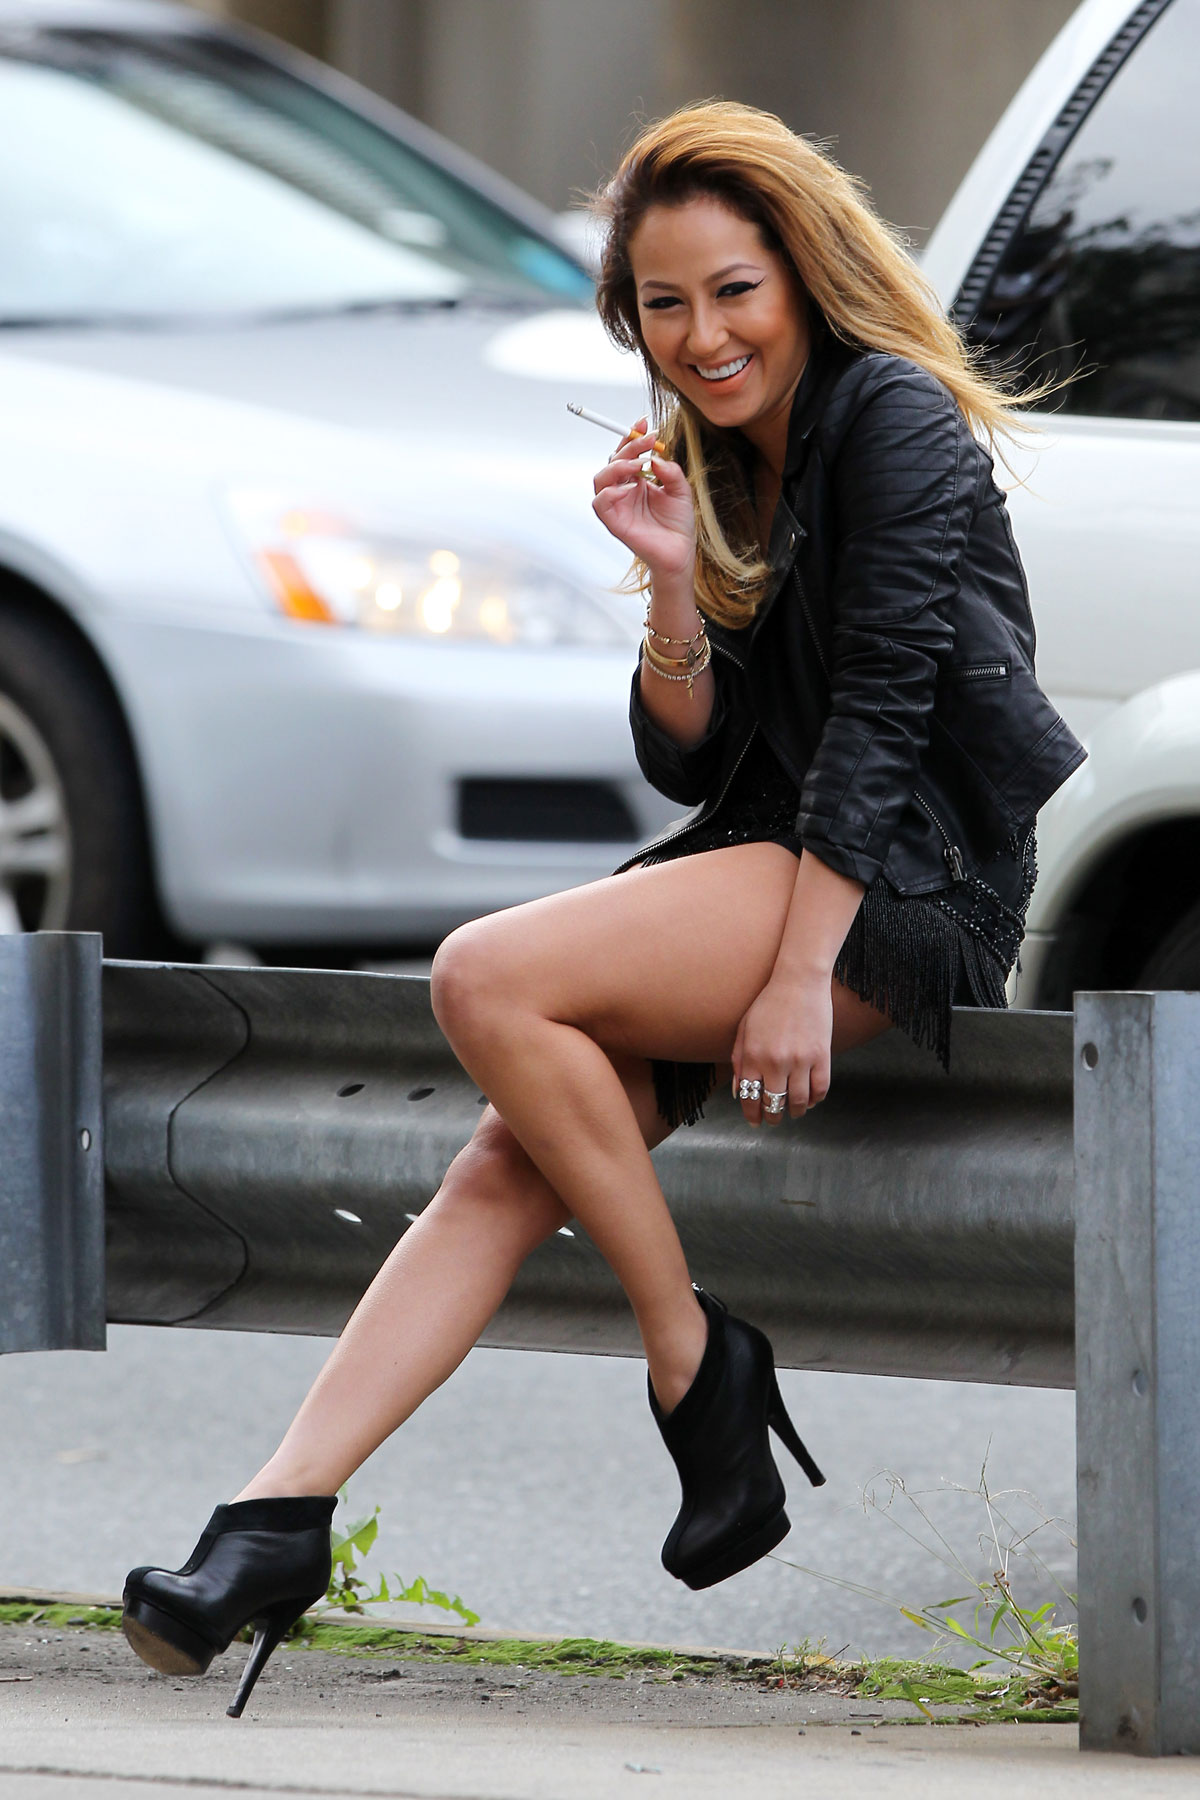 ADRIENNE BAILON at a Photoshoot in New York - HawtCelebs